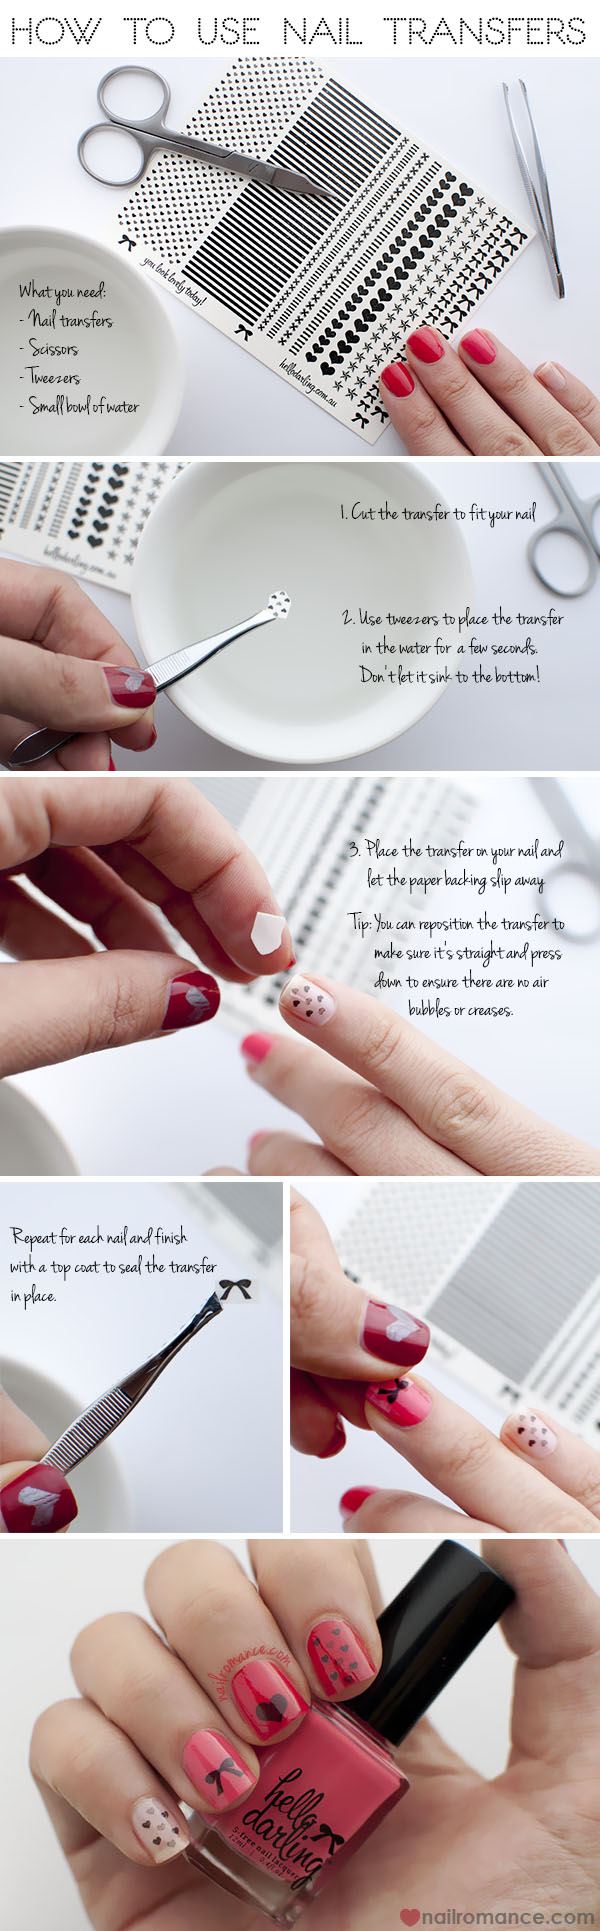 Nail Romance Tutorial - How to use nail transfers